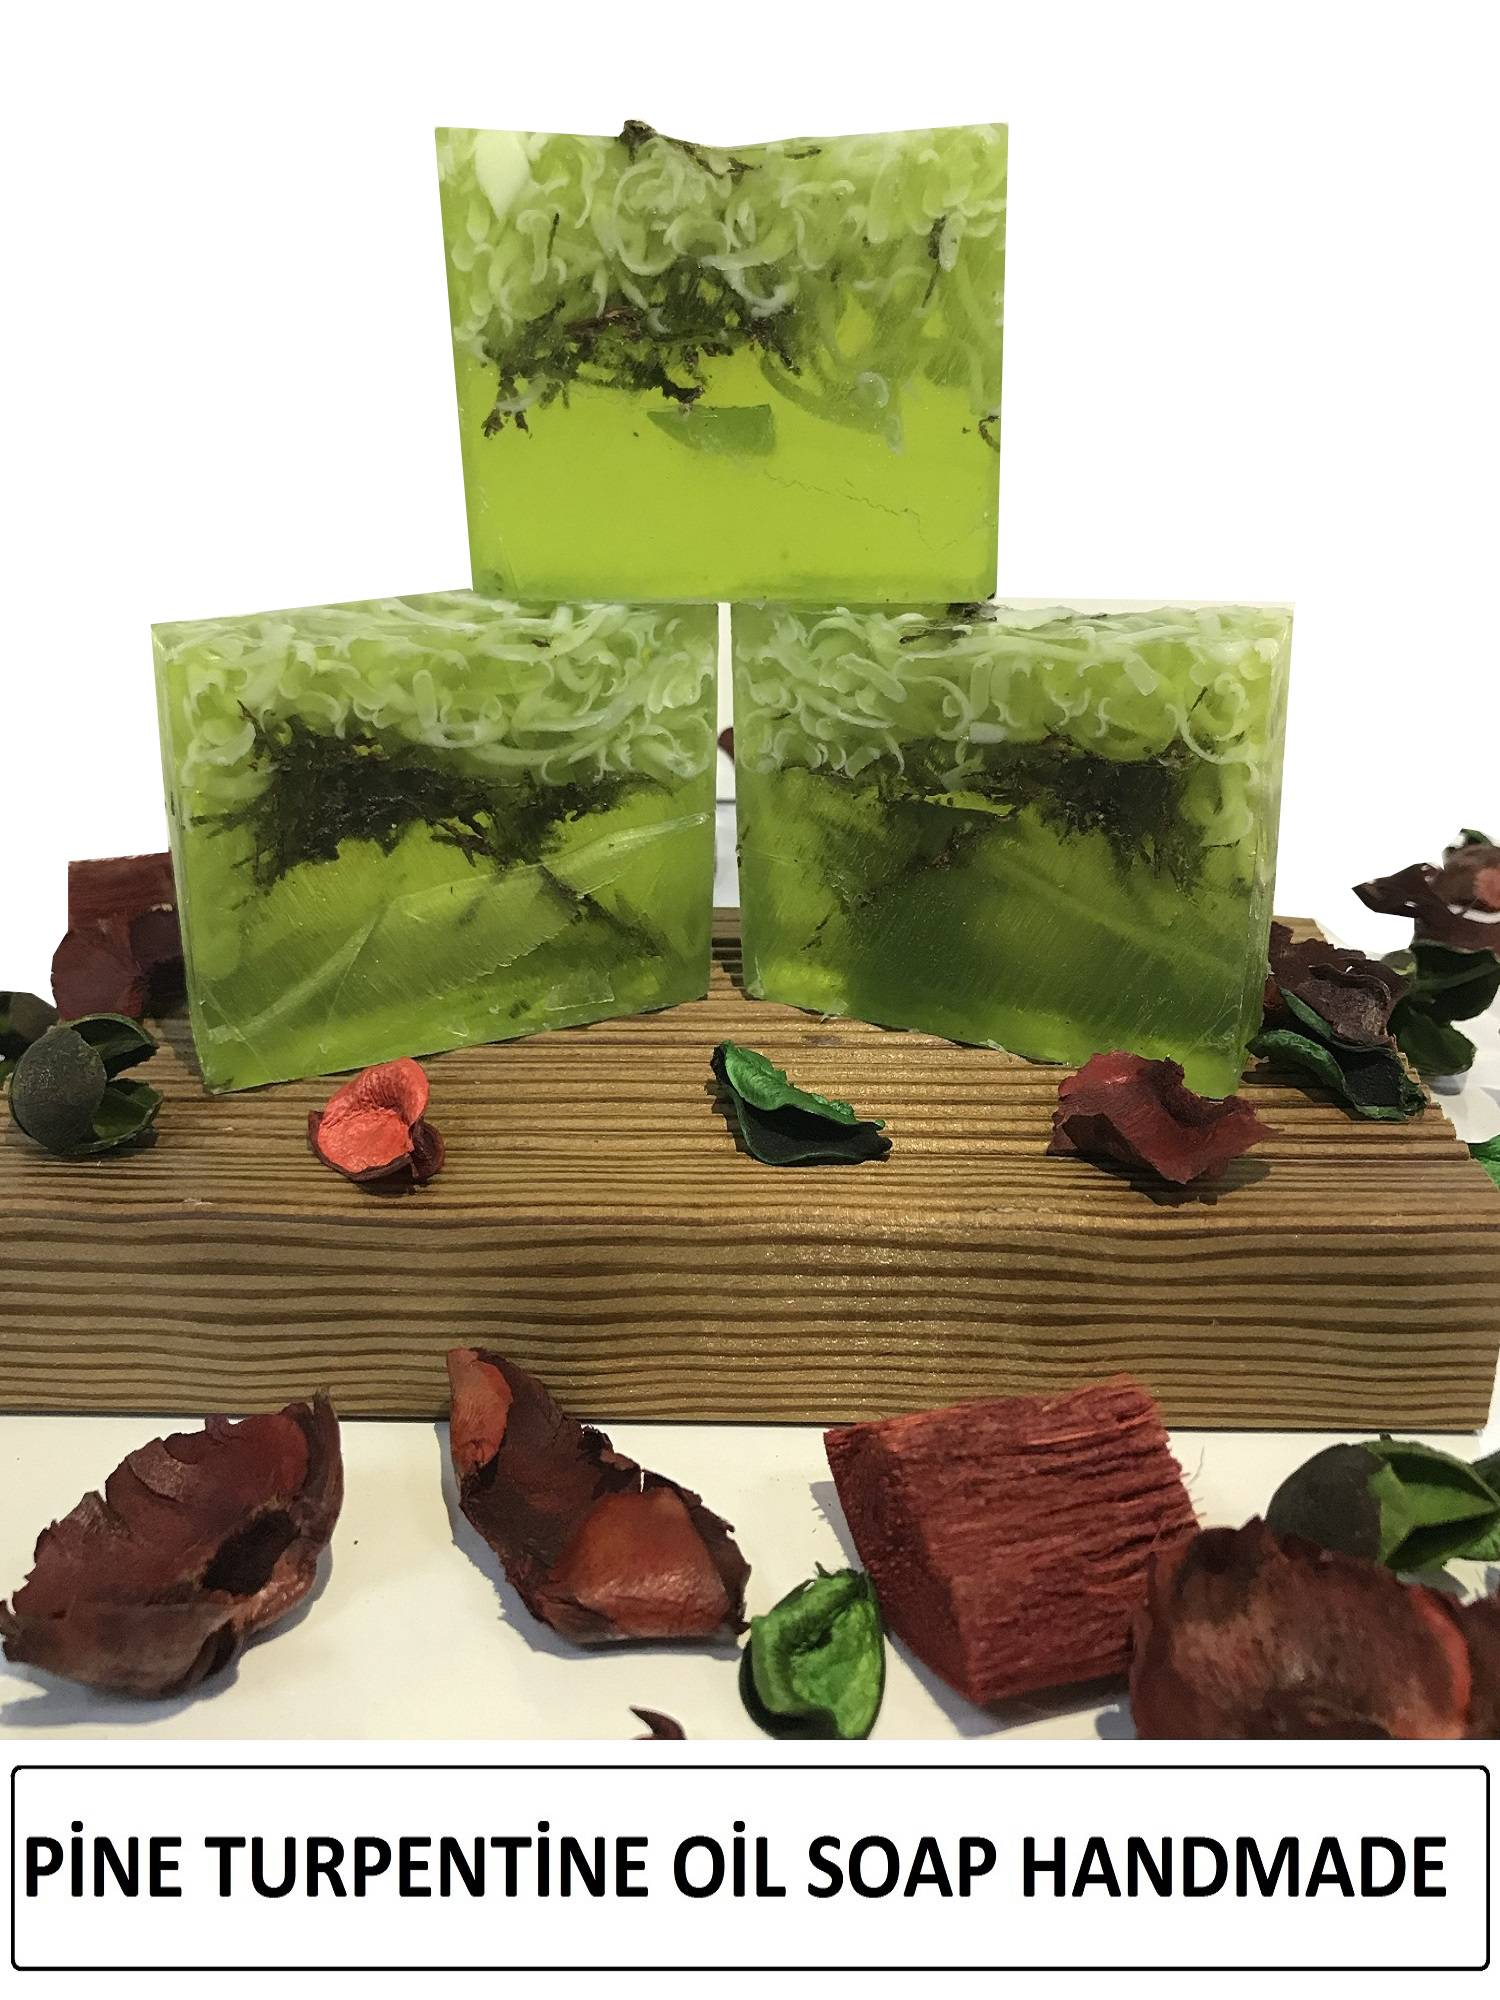 Herbal Handmade Soap 4 Pcs Pine Turpentine Oil Anti Acne Relaxing Moisturizer Face And Body Vitamines Soaps